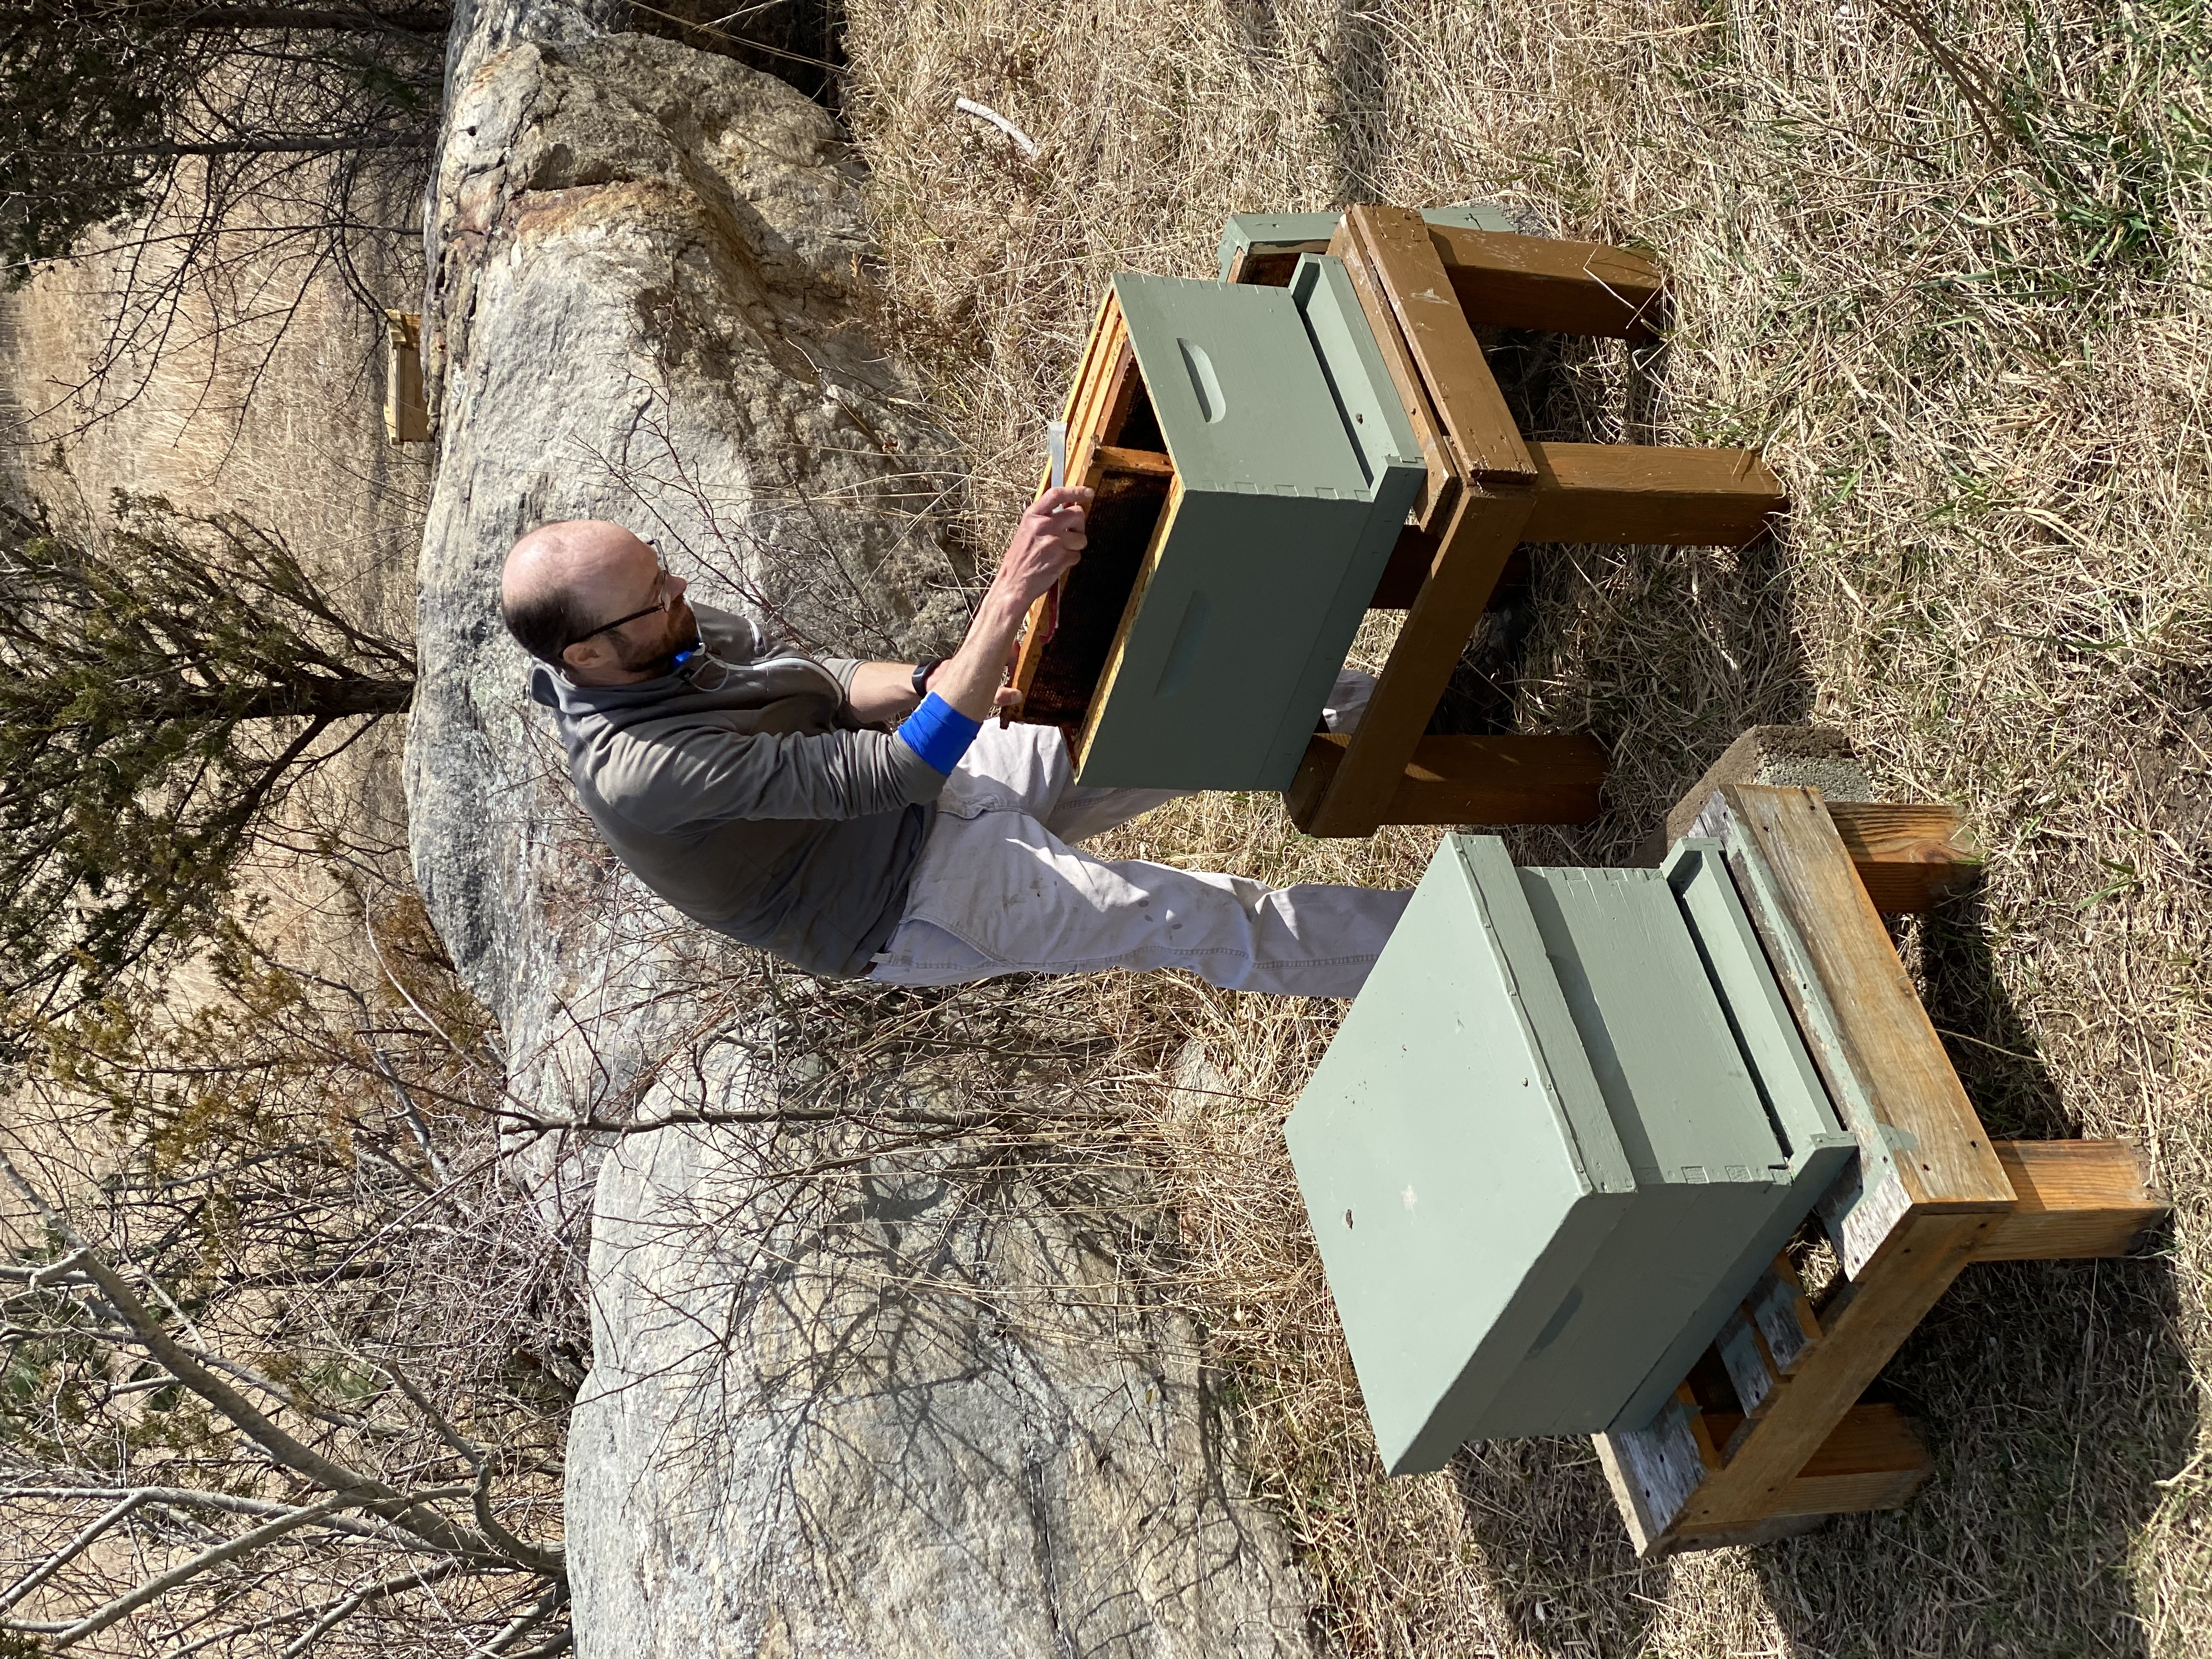 Jamie setting up new hive